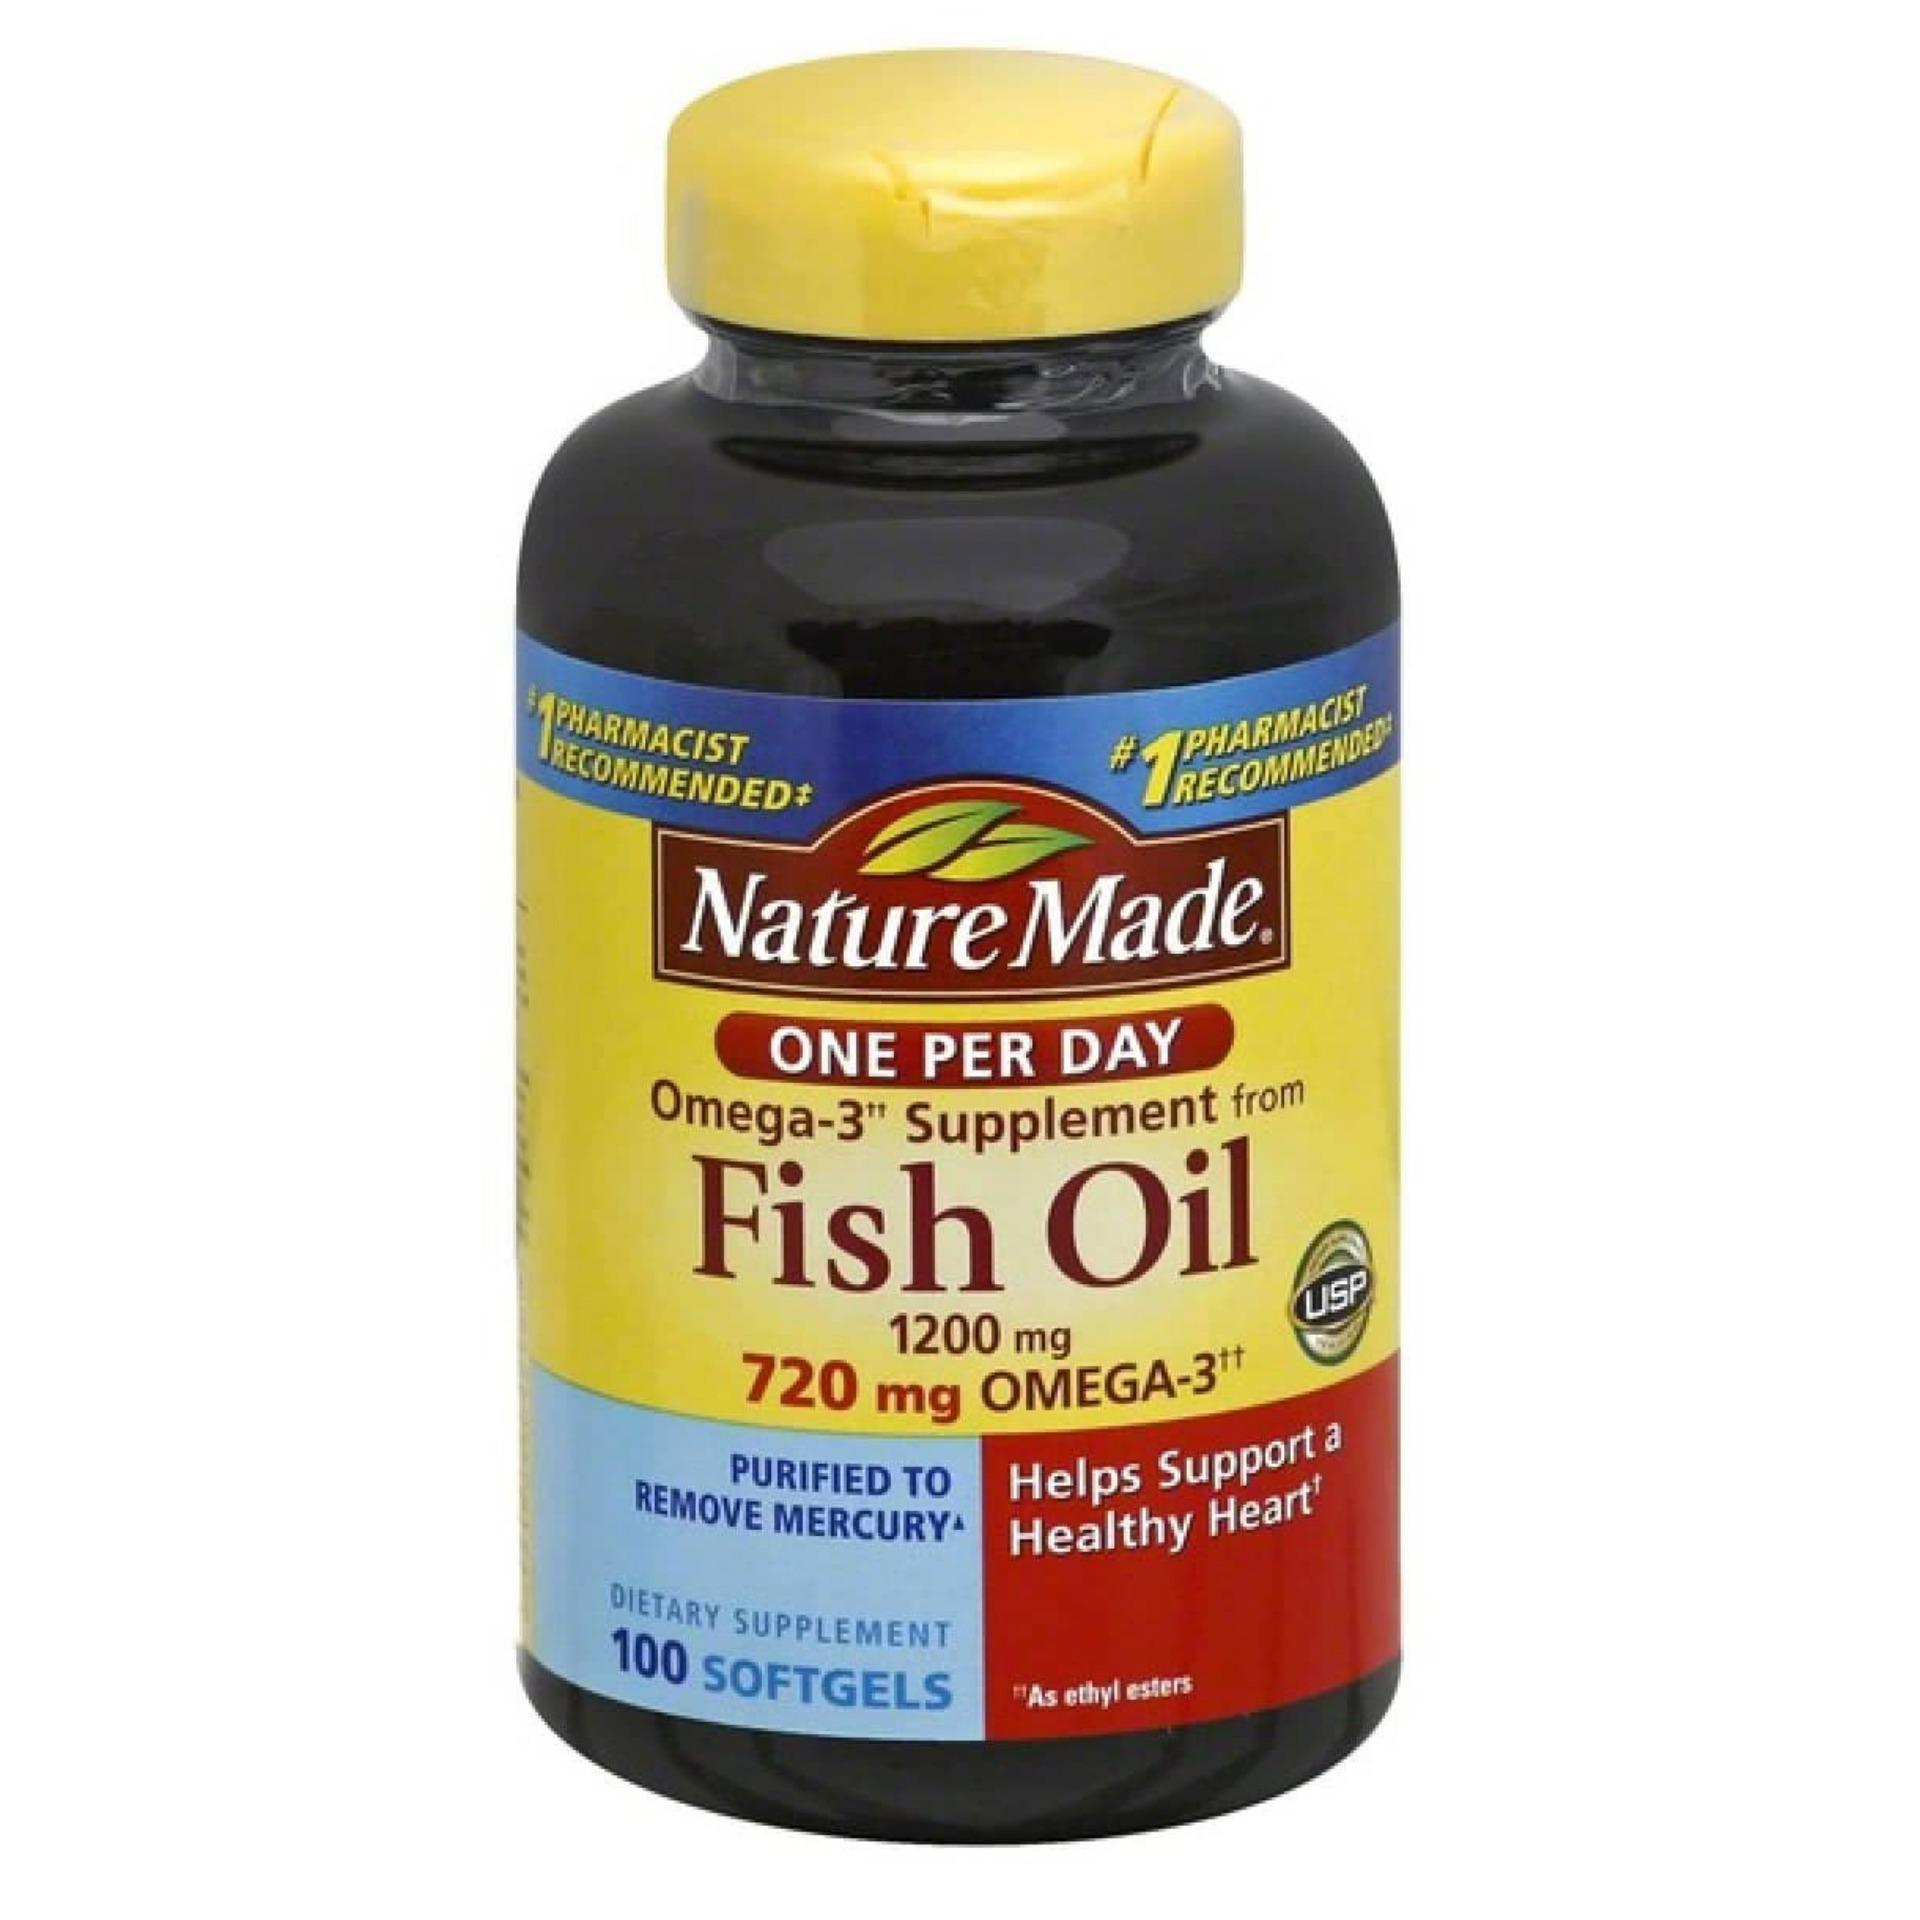 Giá Bán Dầu Ca Nature Made Fish Oil 1200Mg 720Mg Omega 3 100 Vien Nature Made